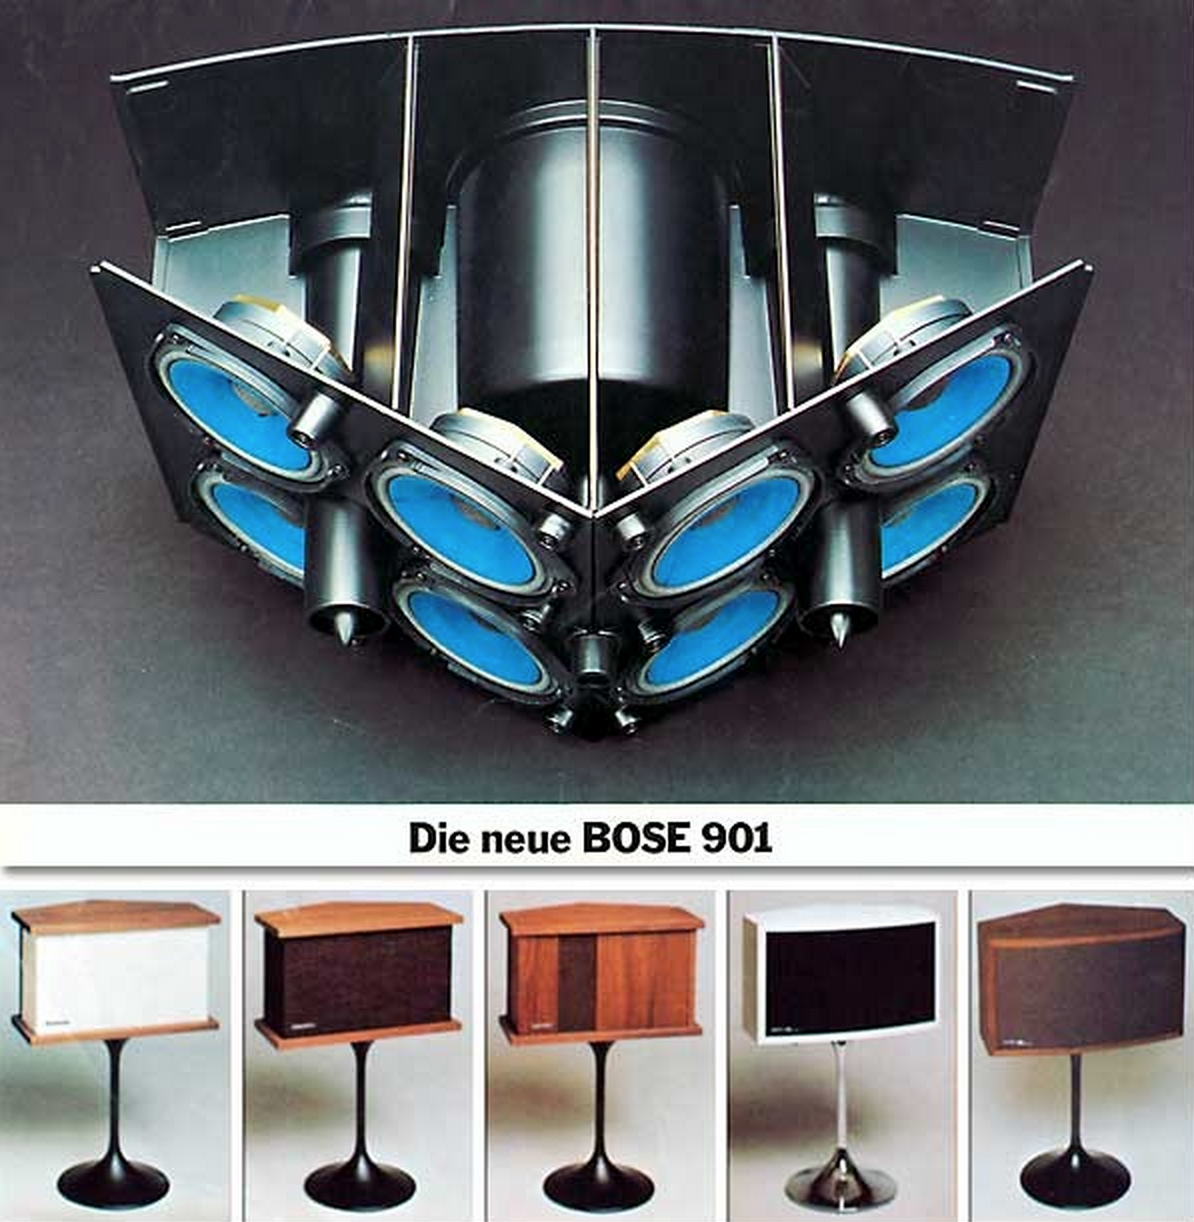 Bose 901 Das Marketing